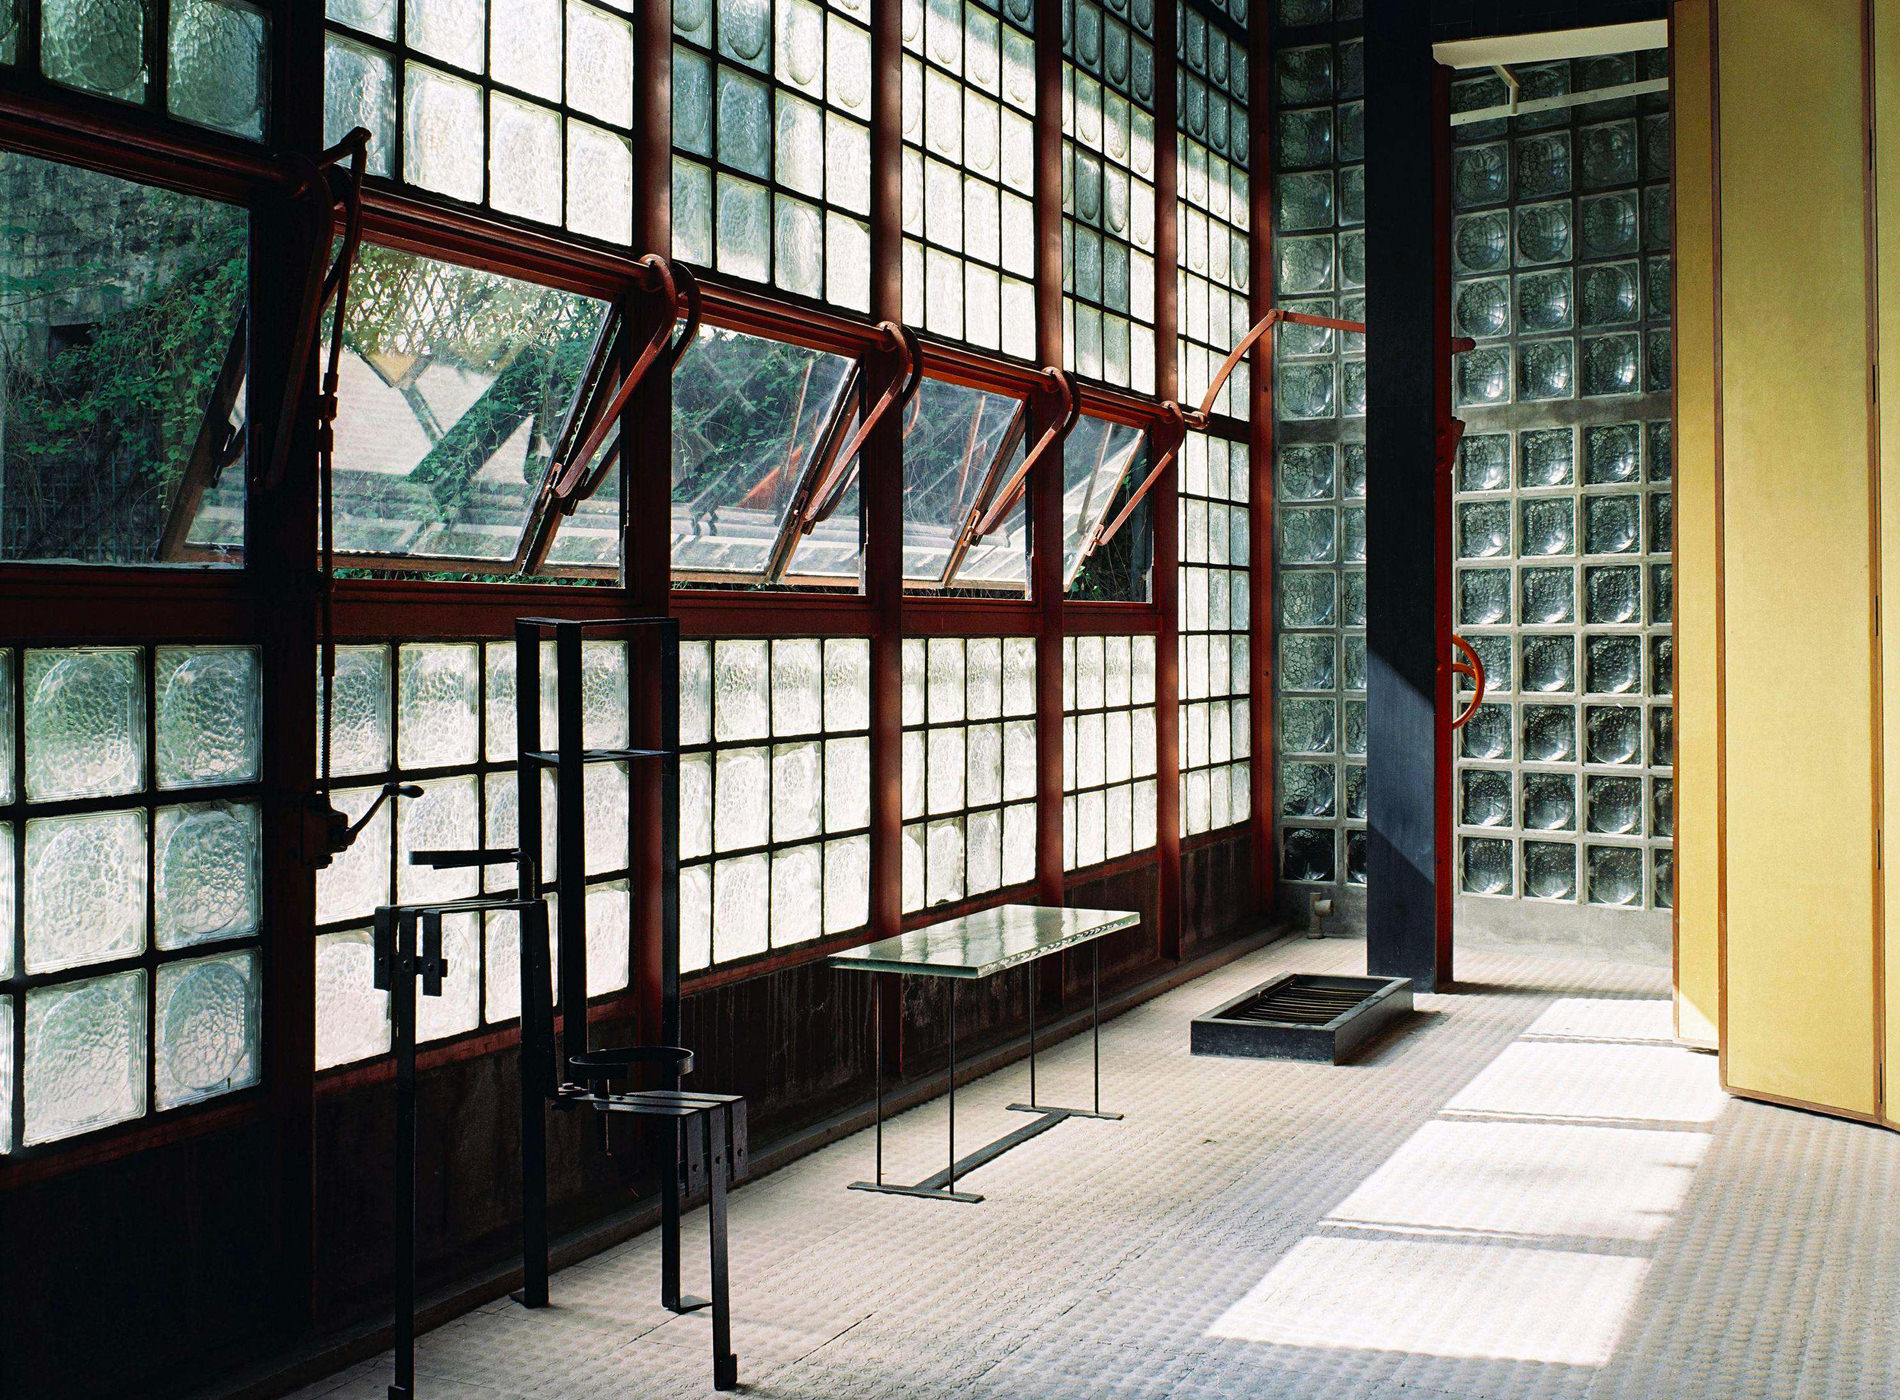 City Guide Paris. La Maison de Verre — Carnets de traverse